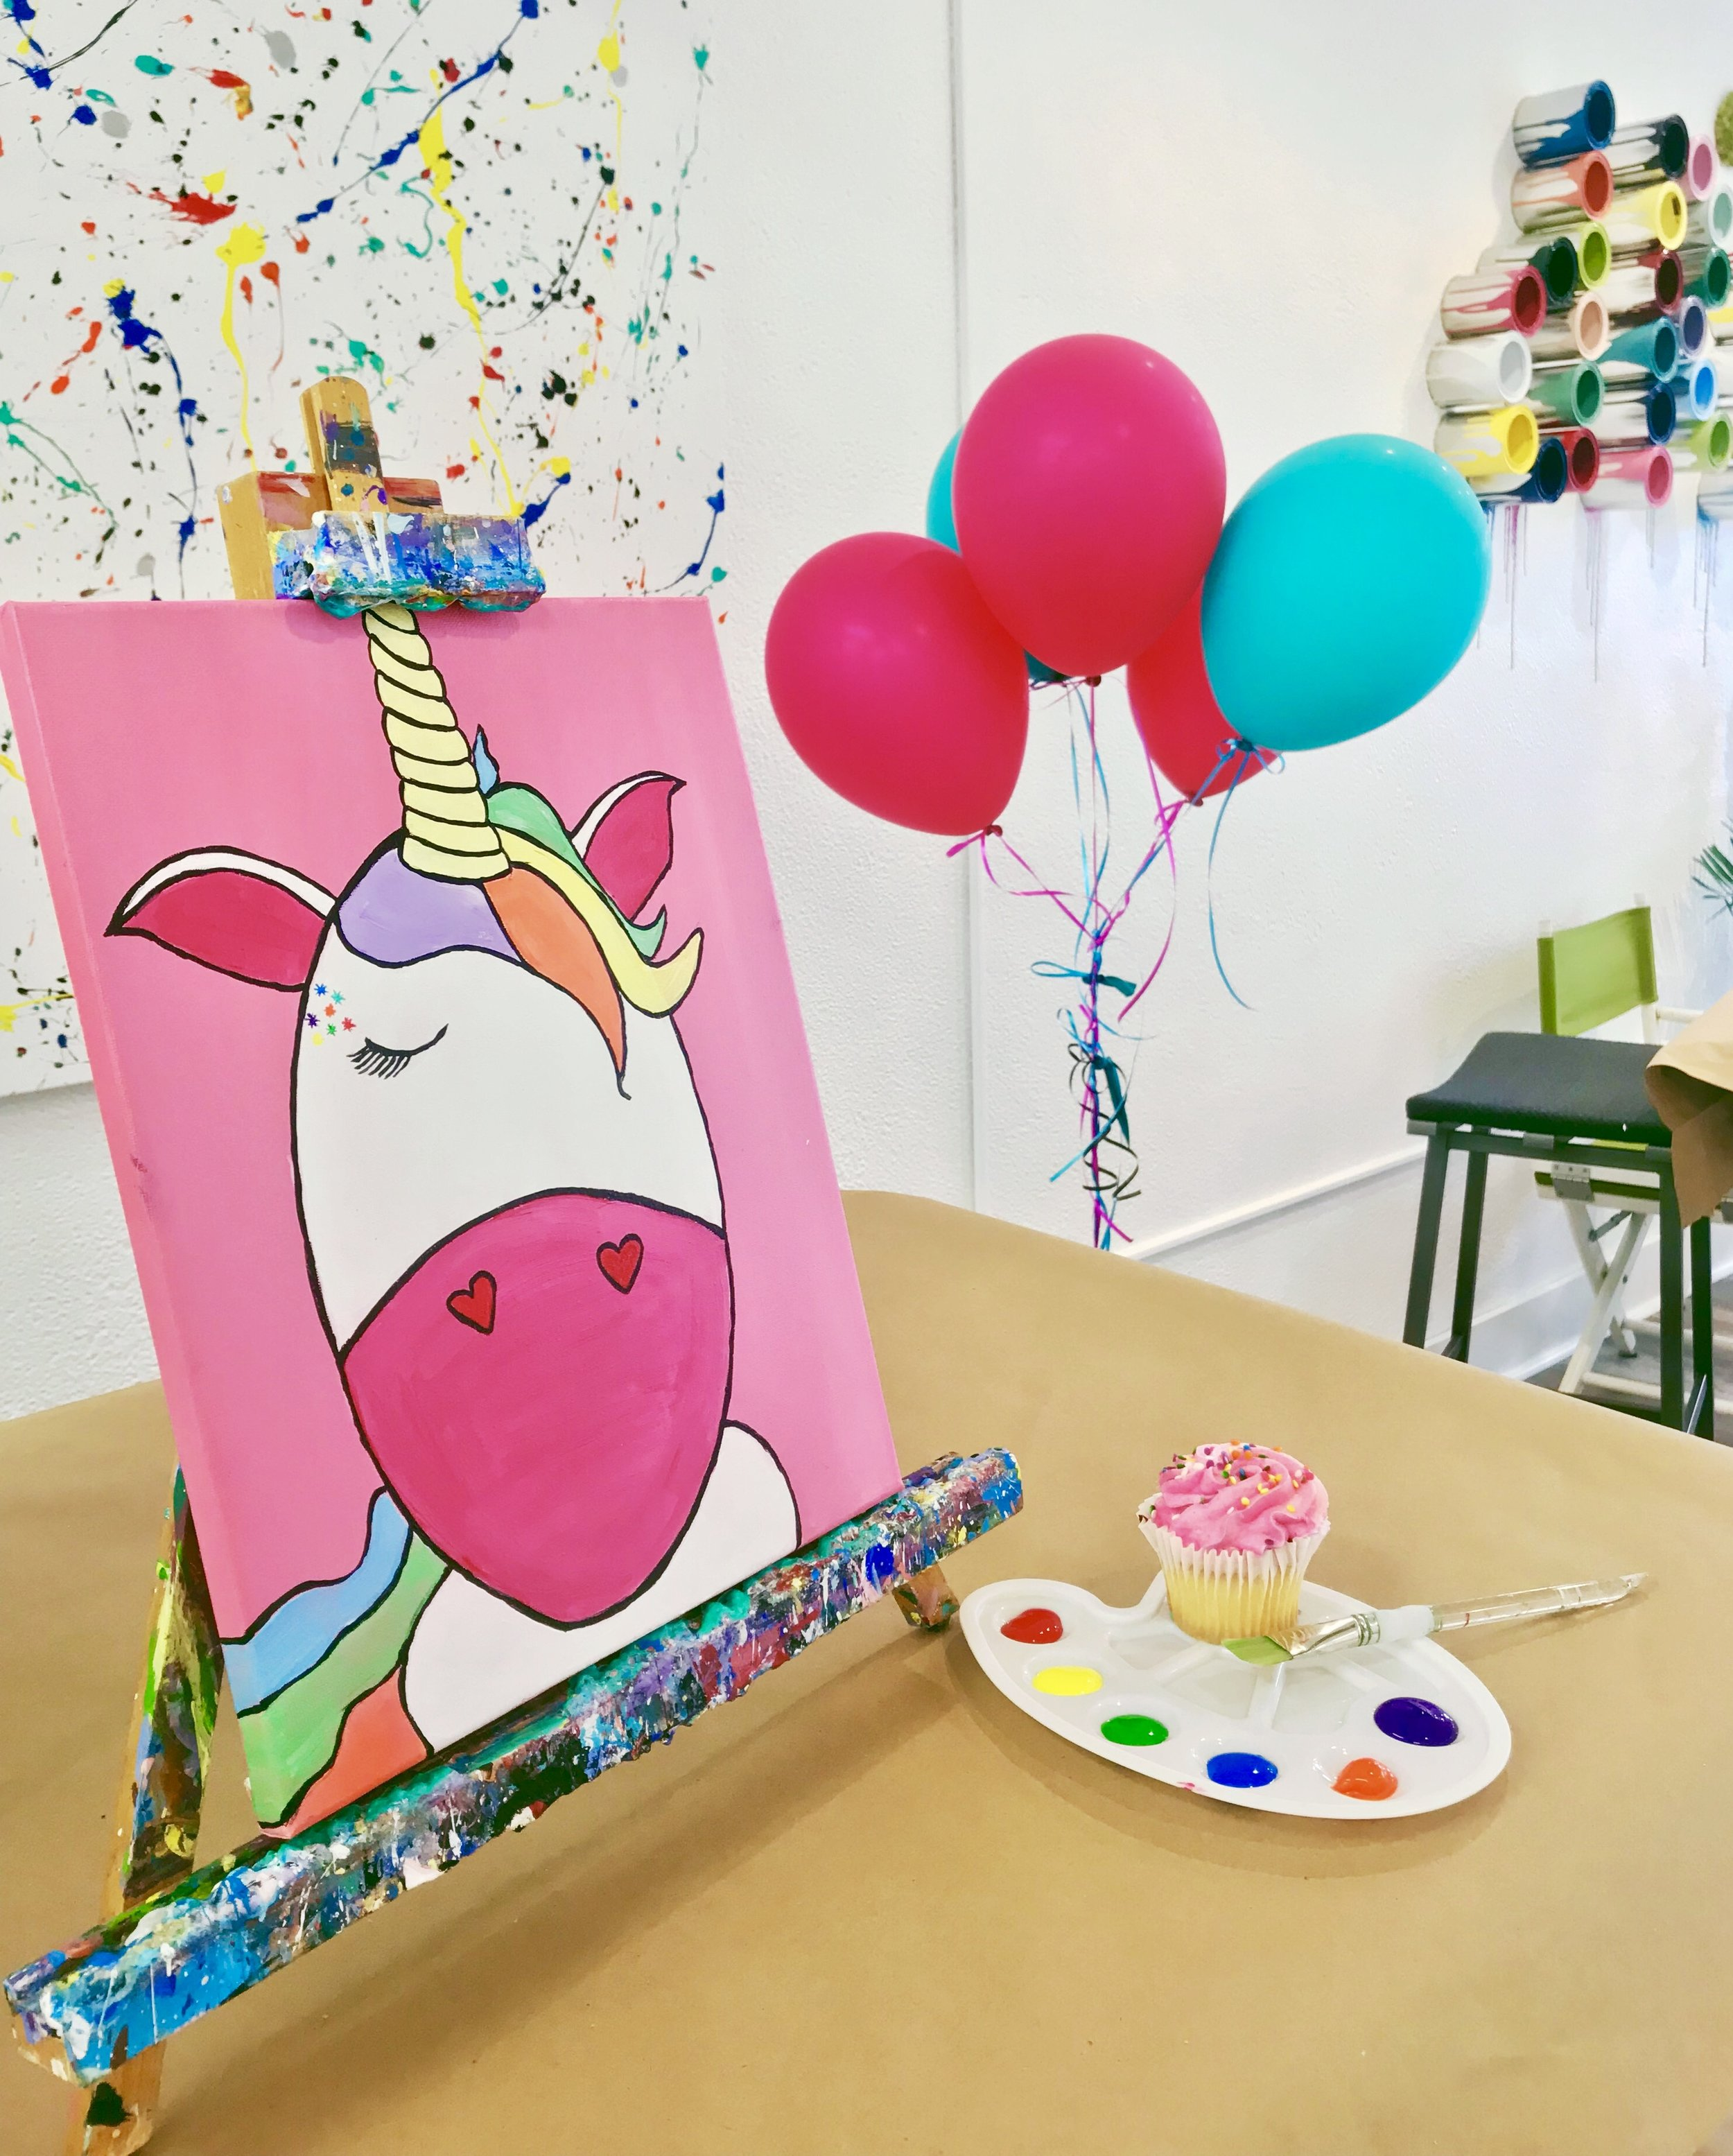 Kid's Birthday Parties - Celebrate your child's special day with a unique creative party.More Information ➝